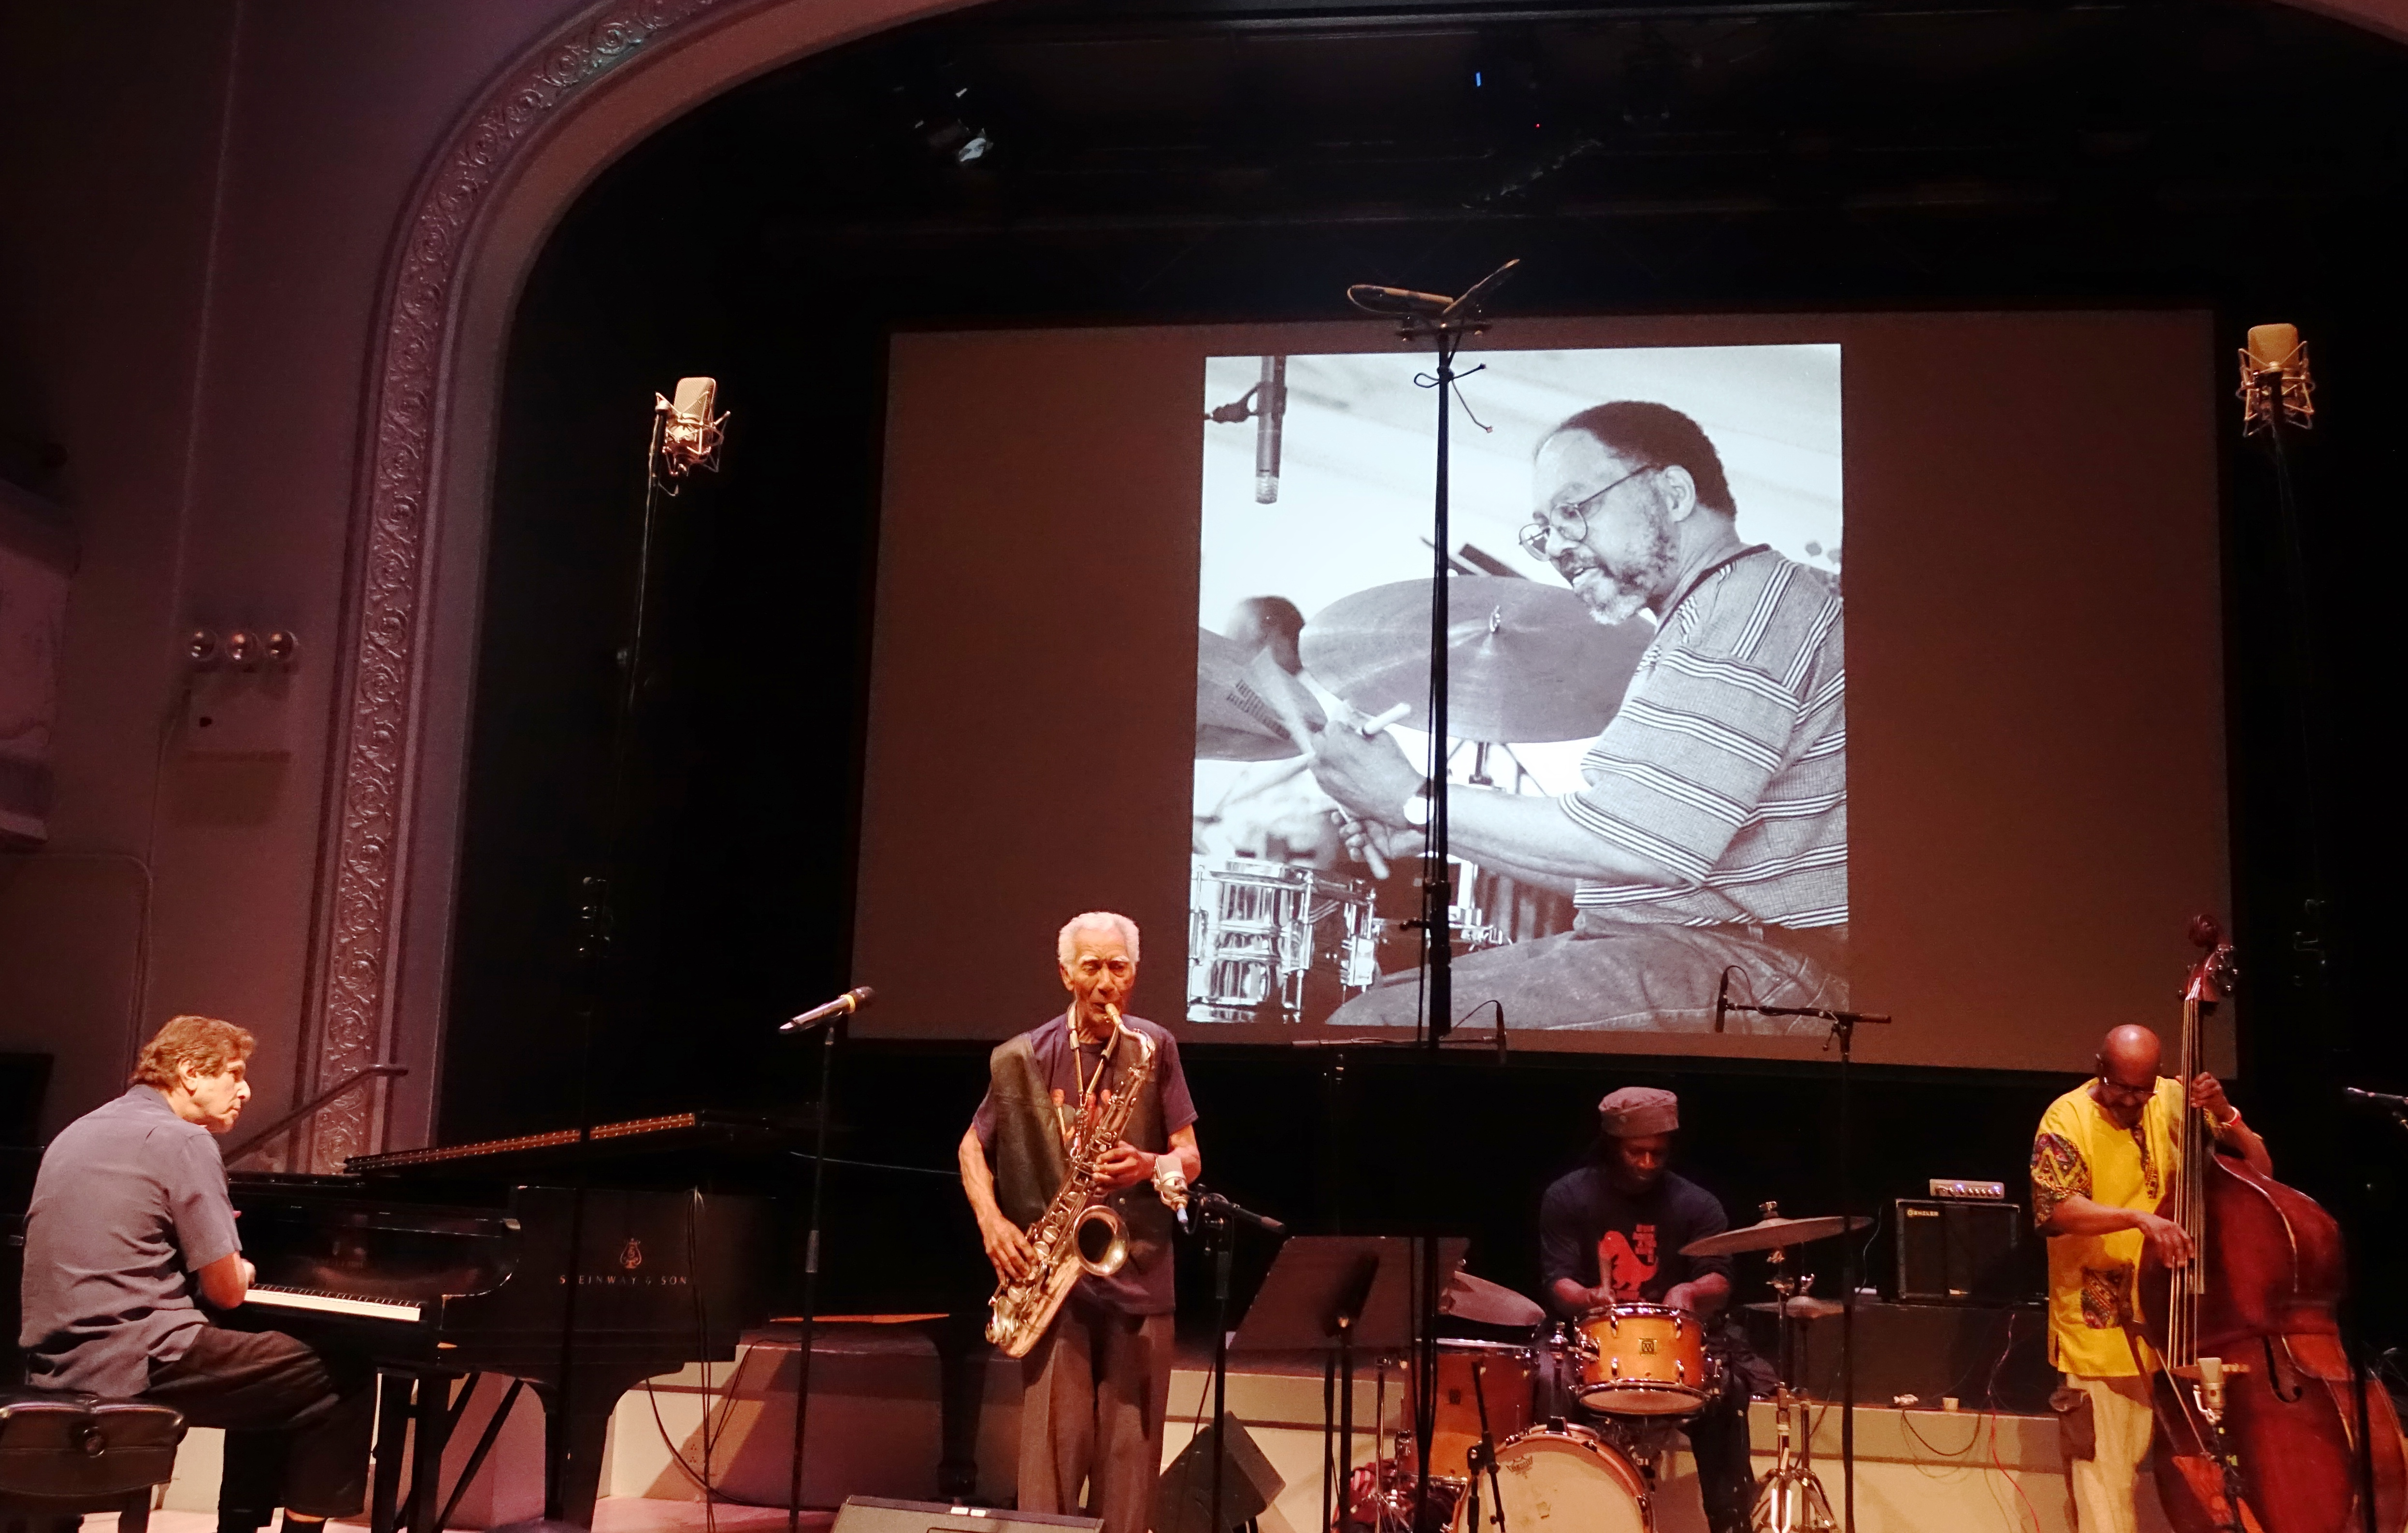 Joel Futterman, Kidd Jordan, Hamid Drake and William Parker at the Vision Festival in Roulette, Brooklyn in June 2019